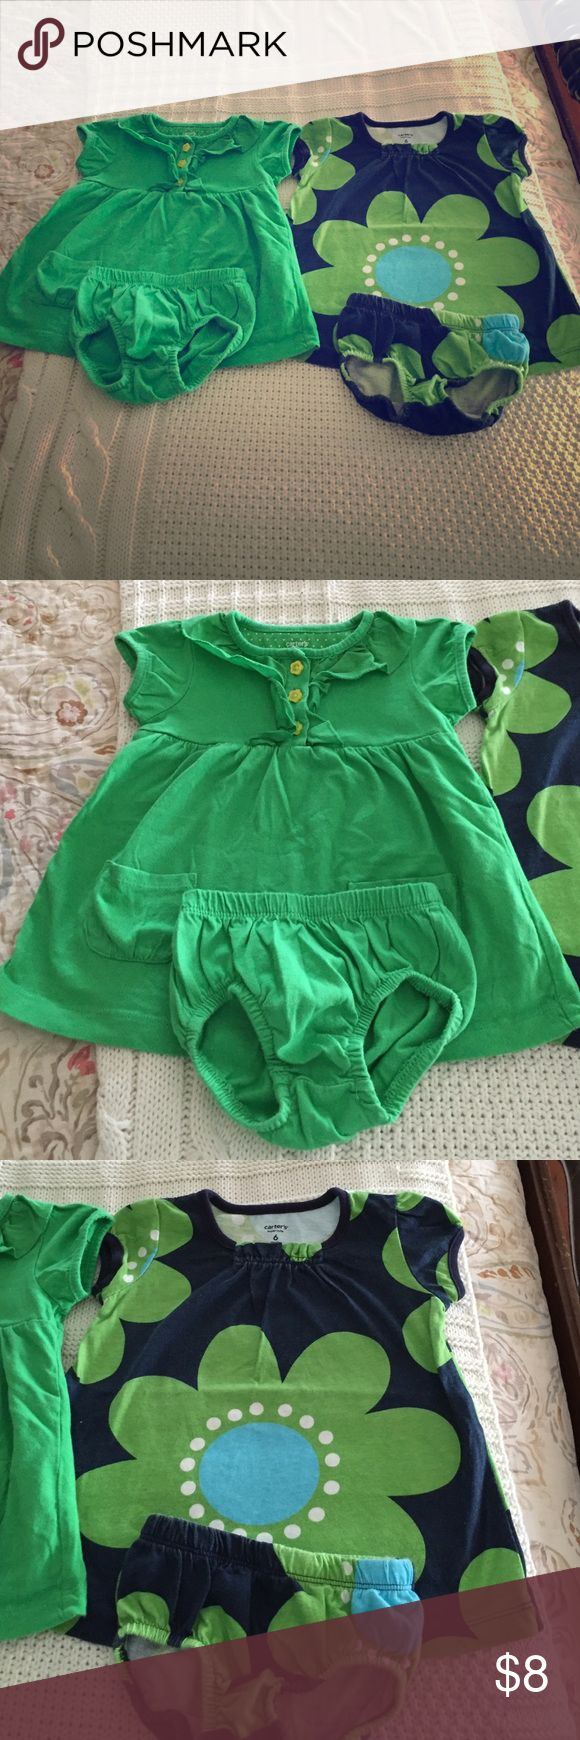 Carter's Baby Girl Dress Bundle Grass green polo style dress with ruffled neckline, short sleeves, front pockets, and light green flower shaped buttons. Comes with matching underpants. The second dress is navy with green and white floral pattern in a swing style. Comes with matching underpants. 100% cotton both 6 months from Carter's. Pre loved but good condition. Adorable and preppy! Carter's Dresses Casual